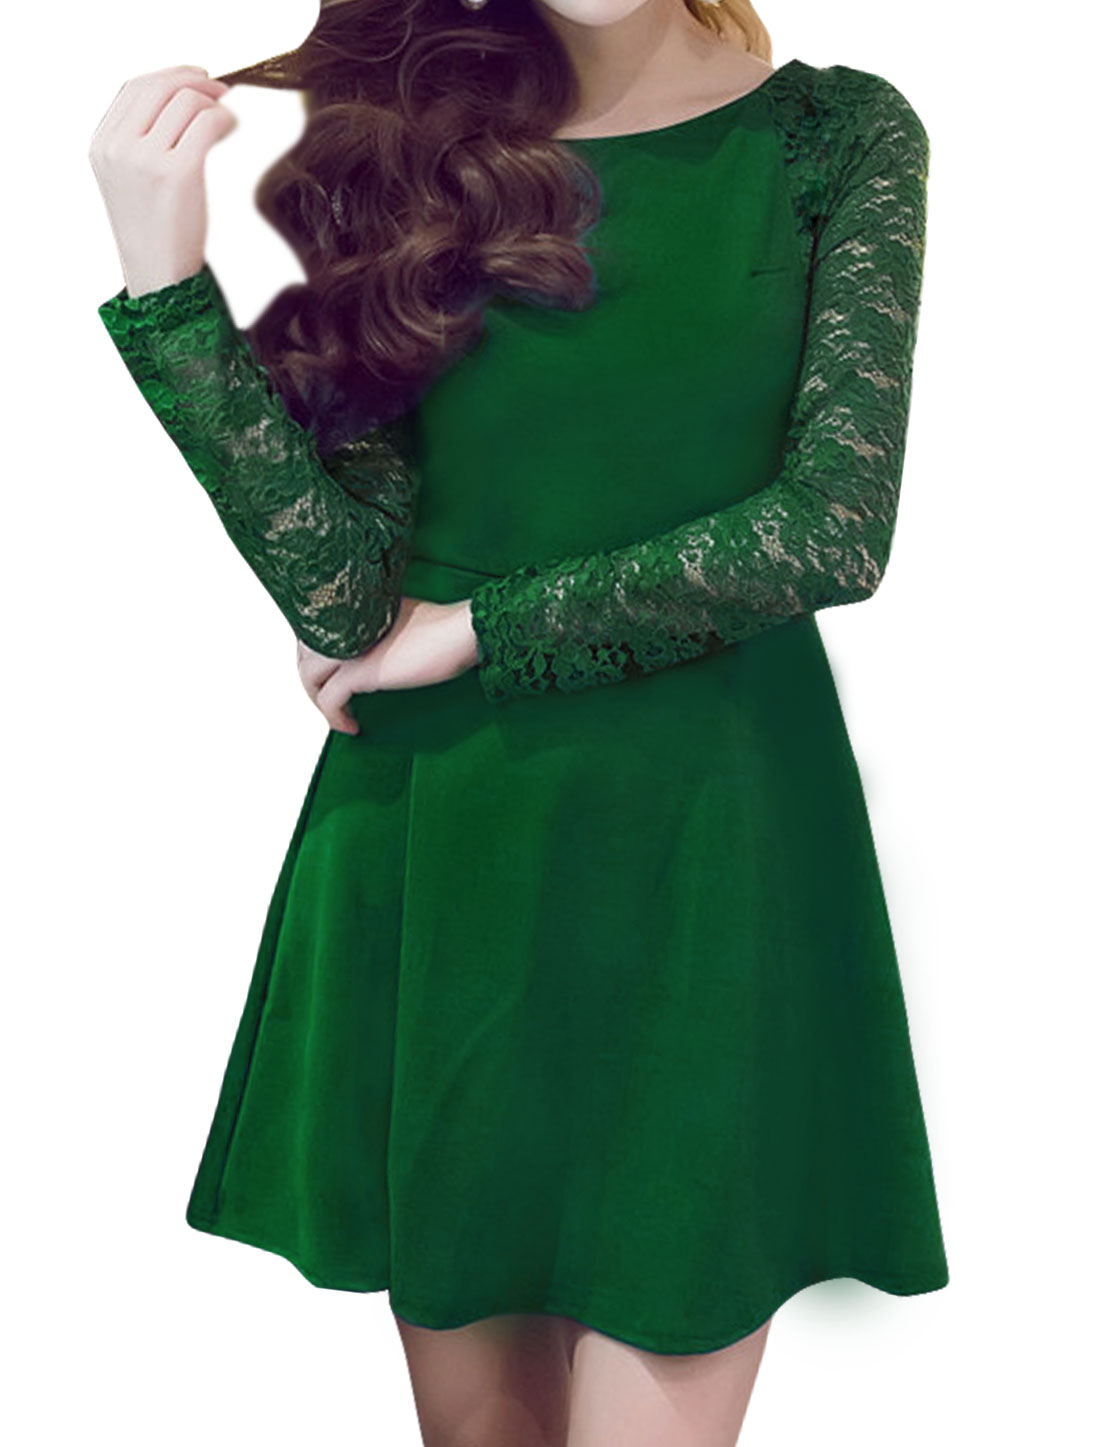 Women Long Sleeves Lace Panel Fit and Flare Dress Green S